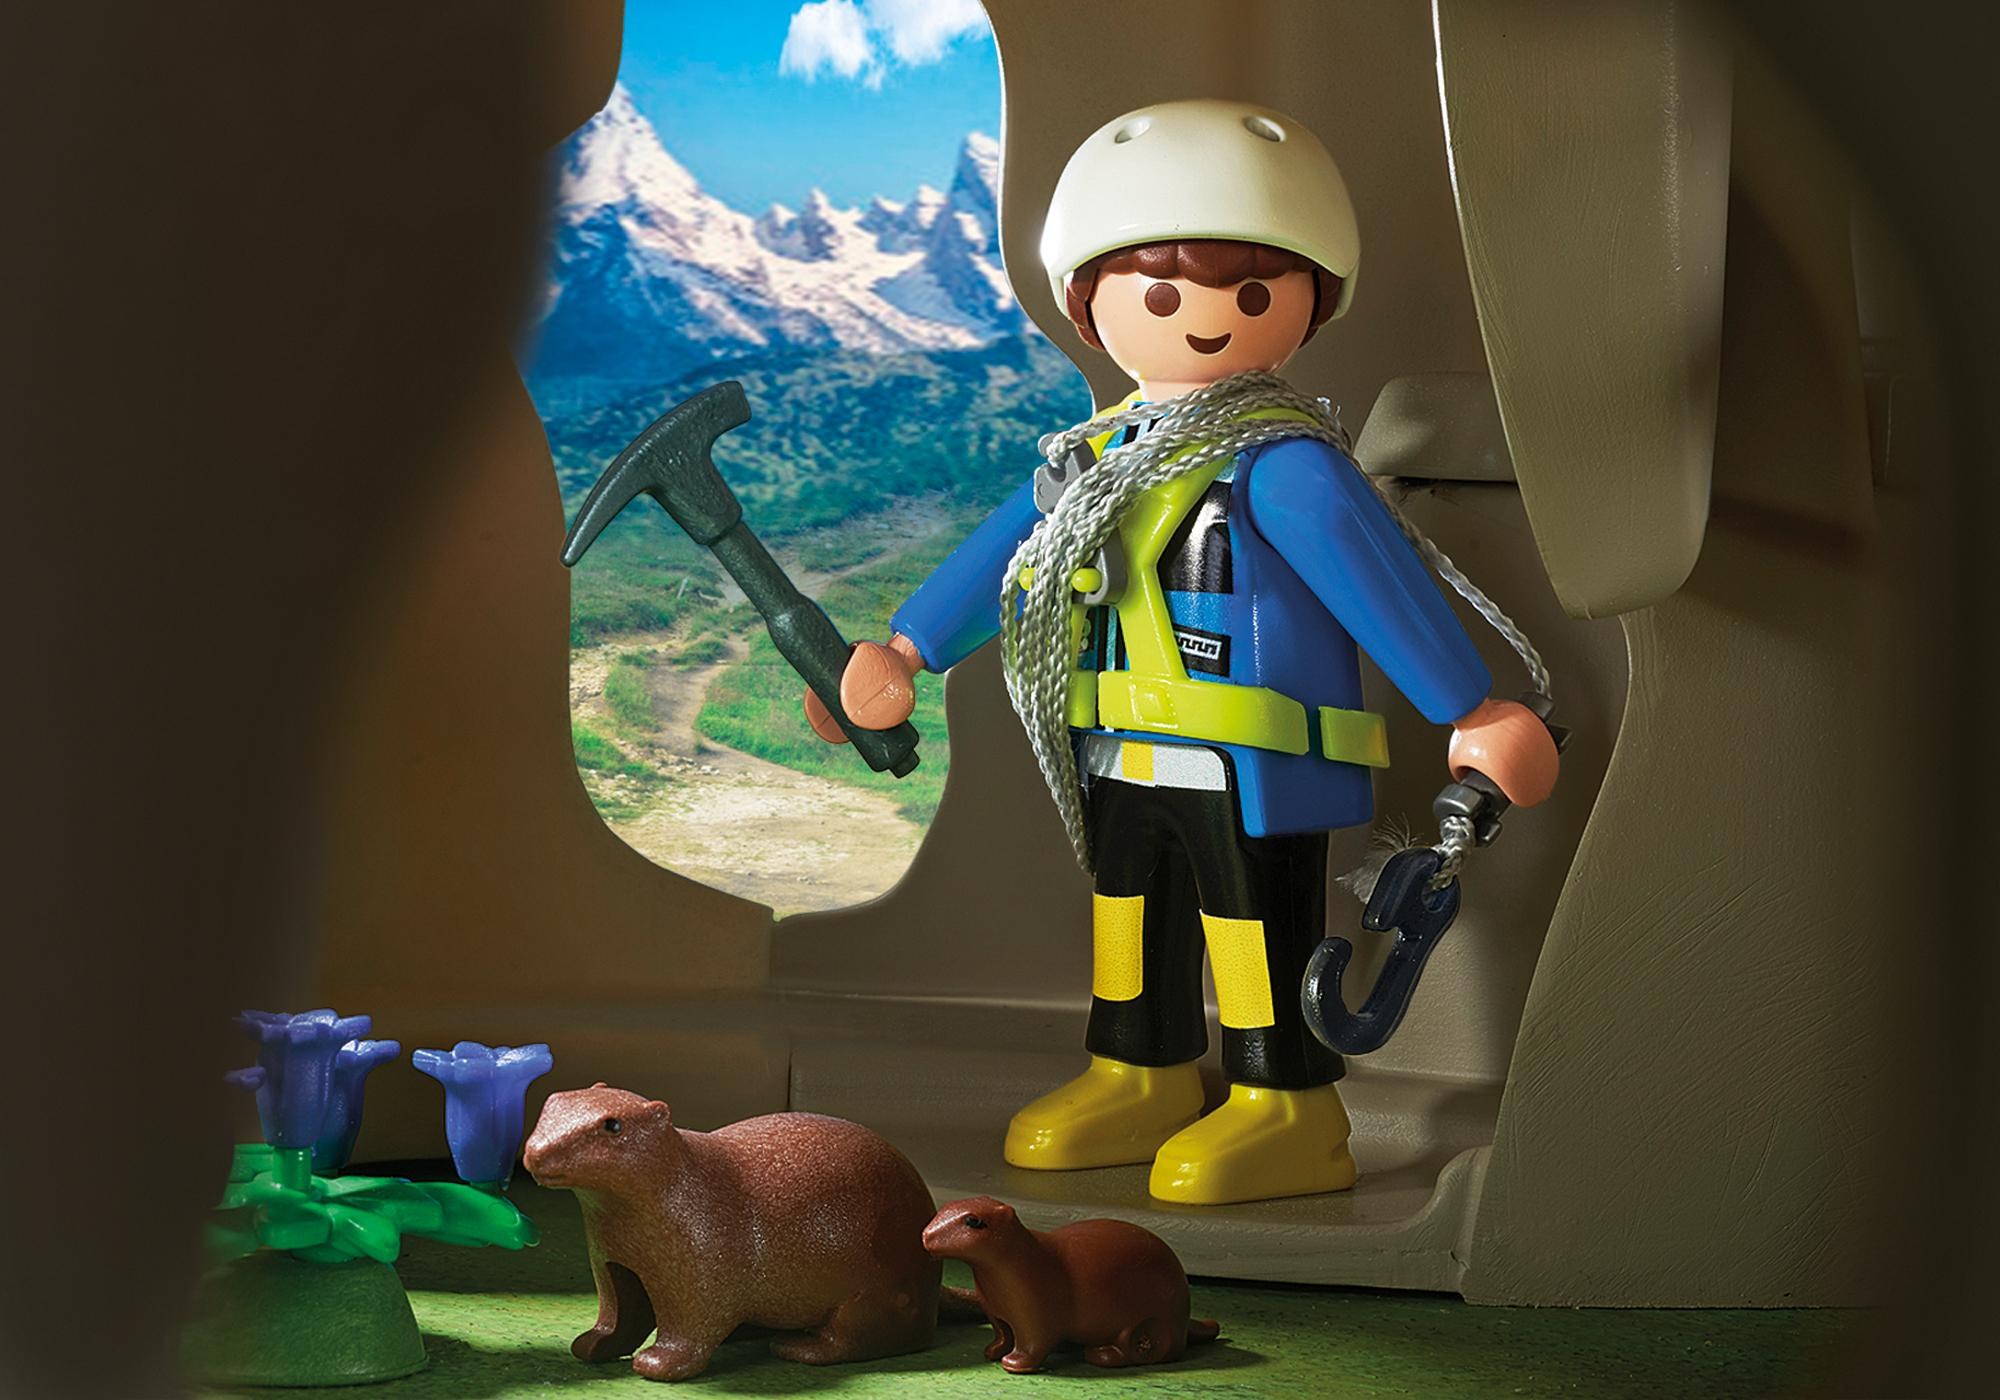 http://media.playmobil.com/i/playmobil/9126_product_extra2/Rock Climbers with Cabin